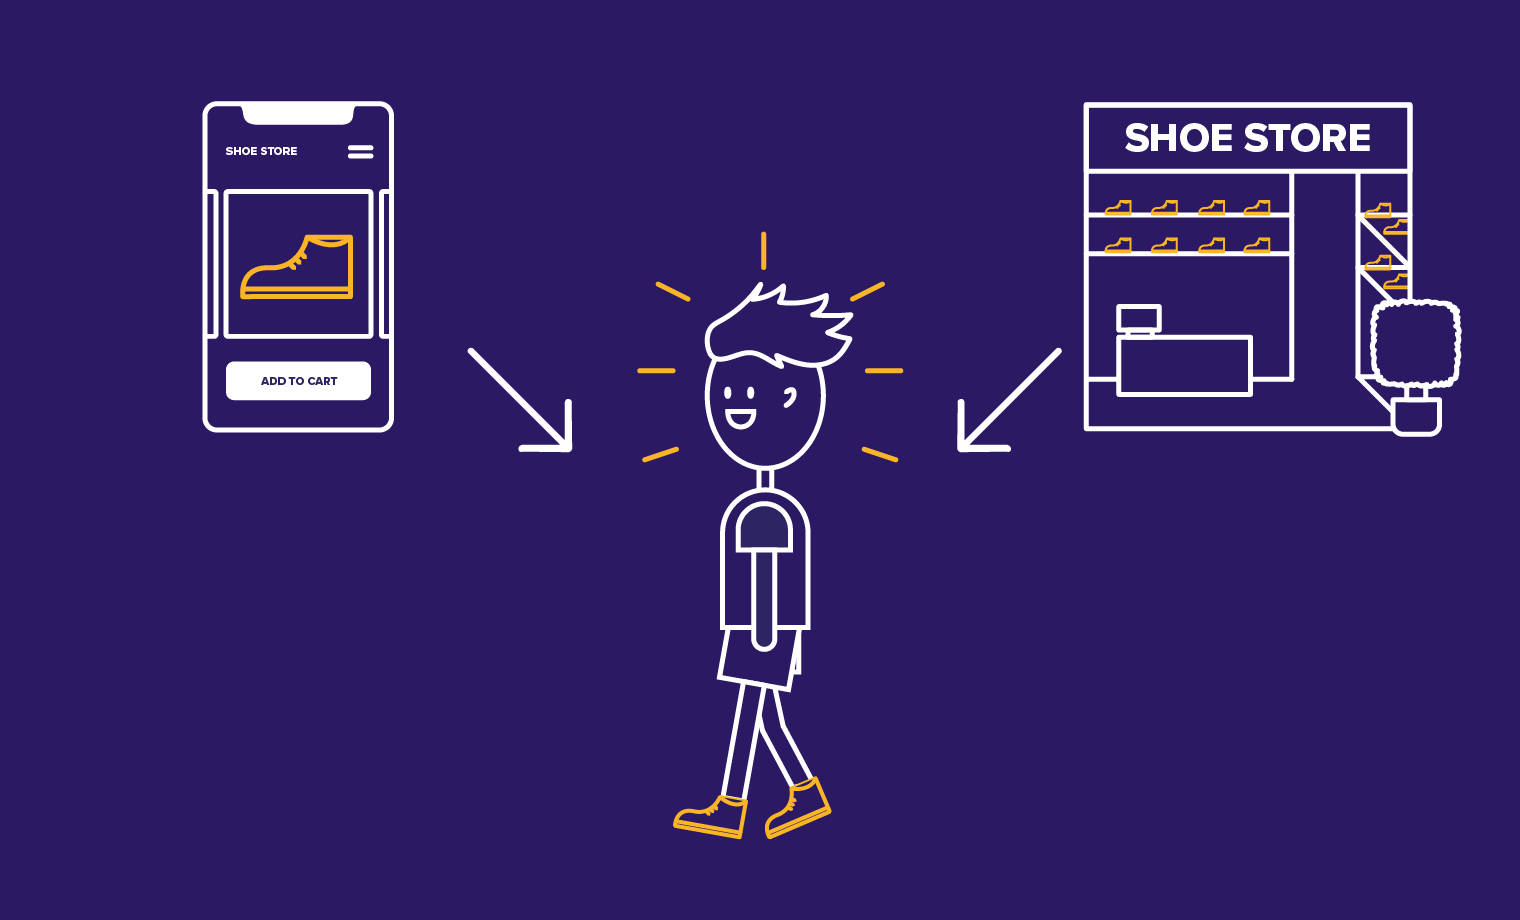 sketch of person, shoe store front, and smart phone with arrows to symbolize user experience